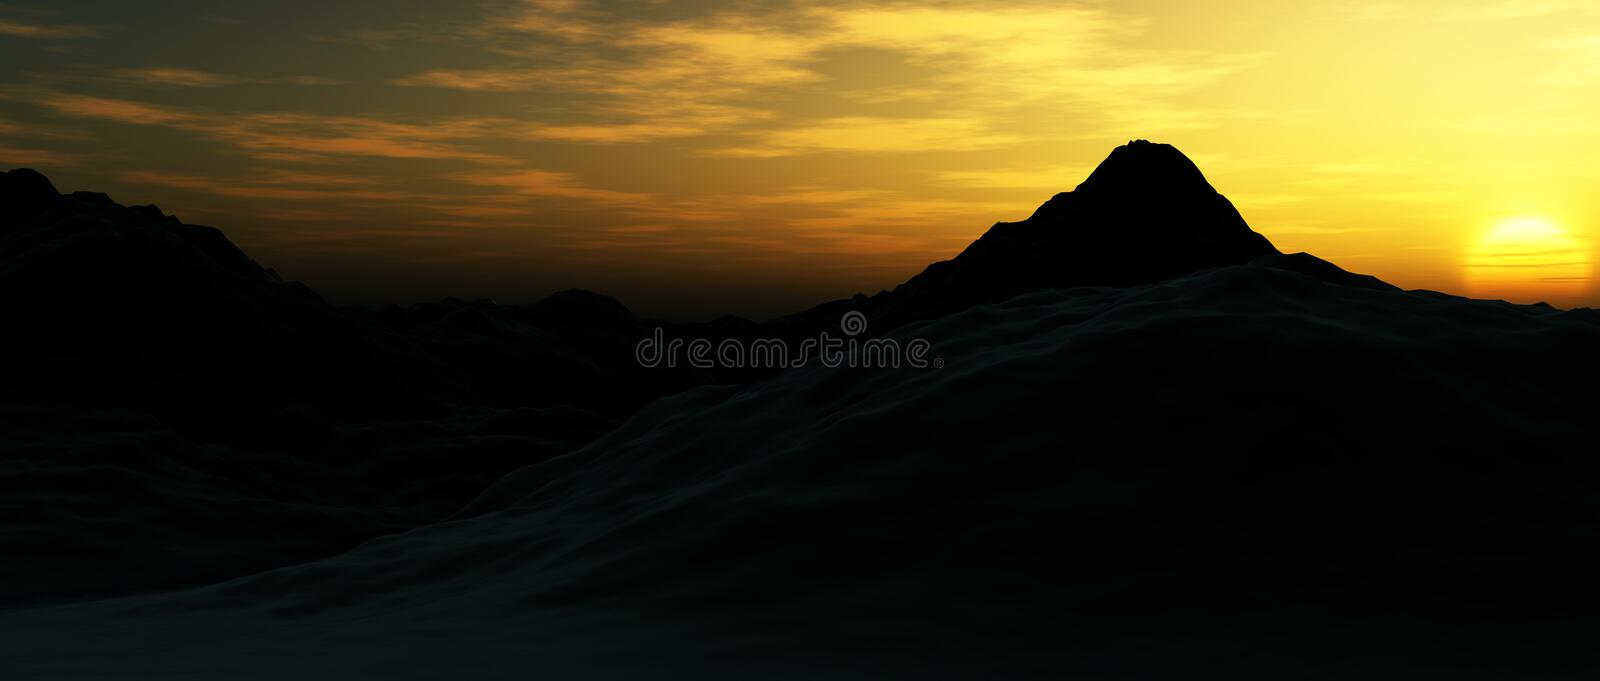 Mountain Landscape 4 Royalty Free Stock Photography